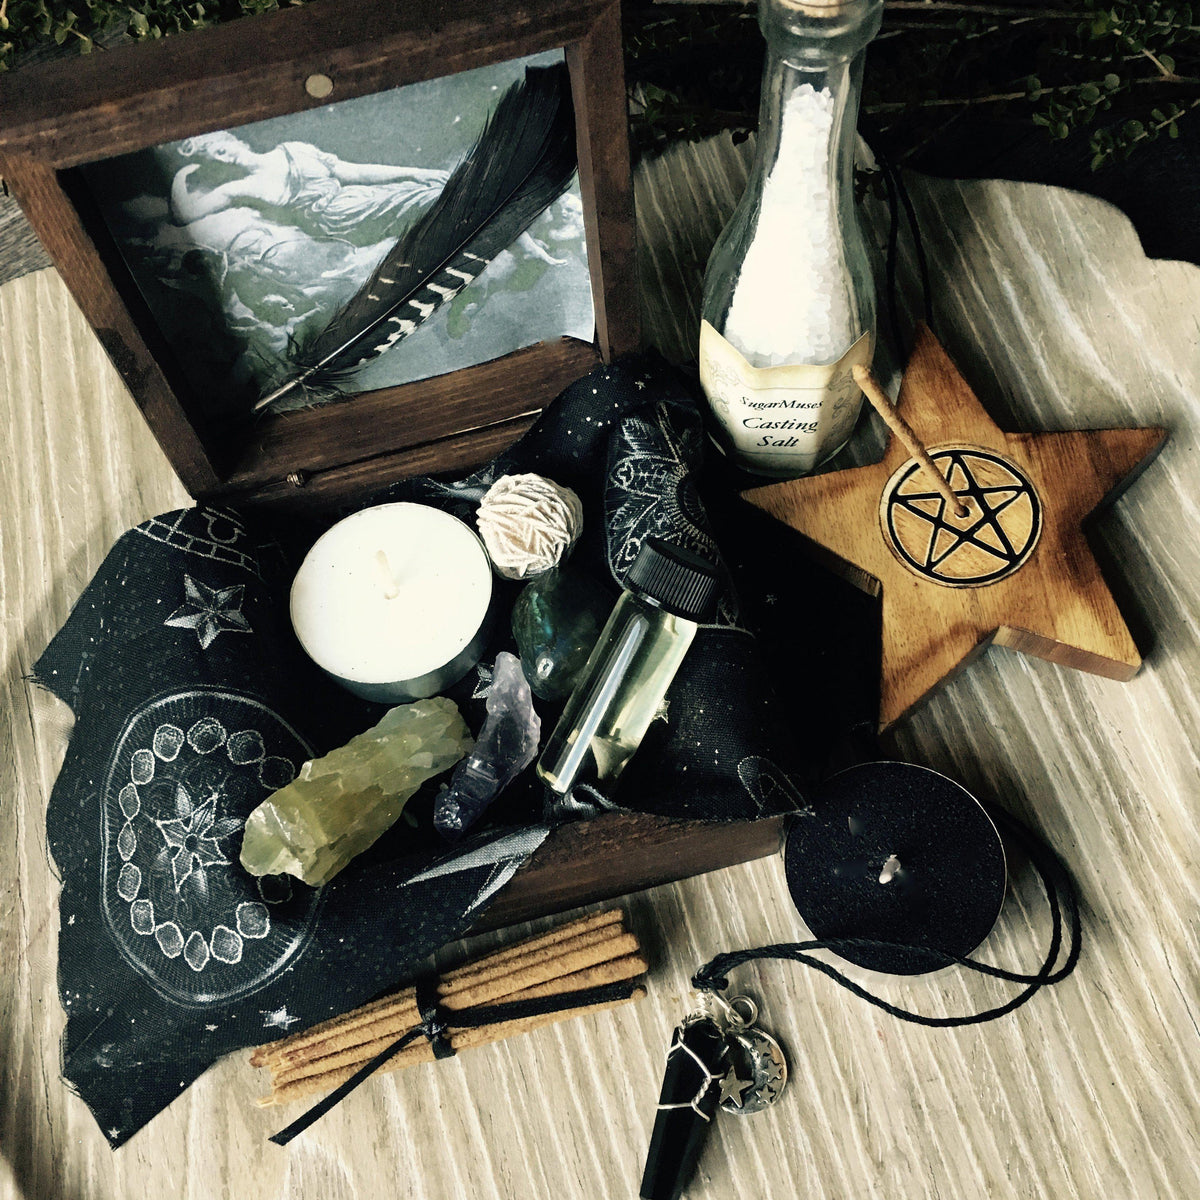 Altar Witch Box Wicca Pagan Goddess Trinket box Altar Supplies Spell Kit ©, pagan kit - SugarMuses